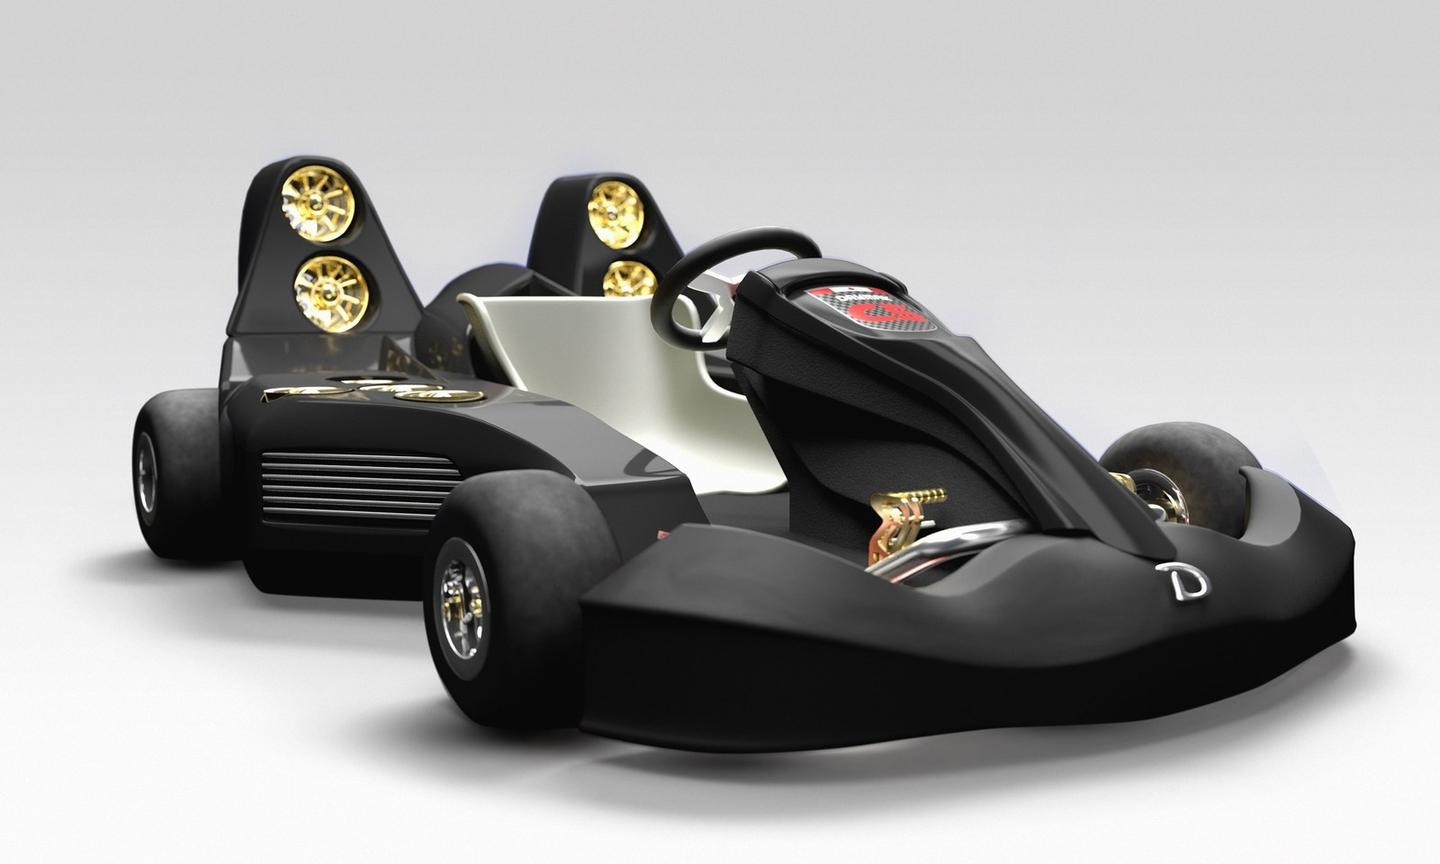 The Daymak Blast C5 Ultimate uses a fan propulsion system that Daymak says will help it hit 60 mph in 1.5 seconds